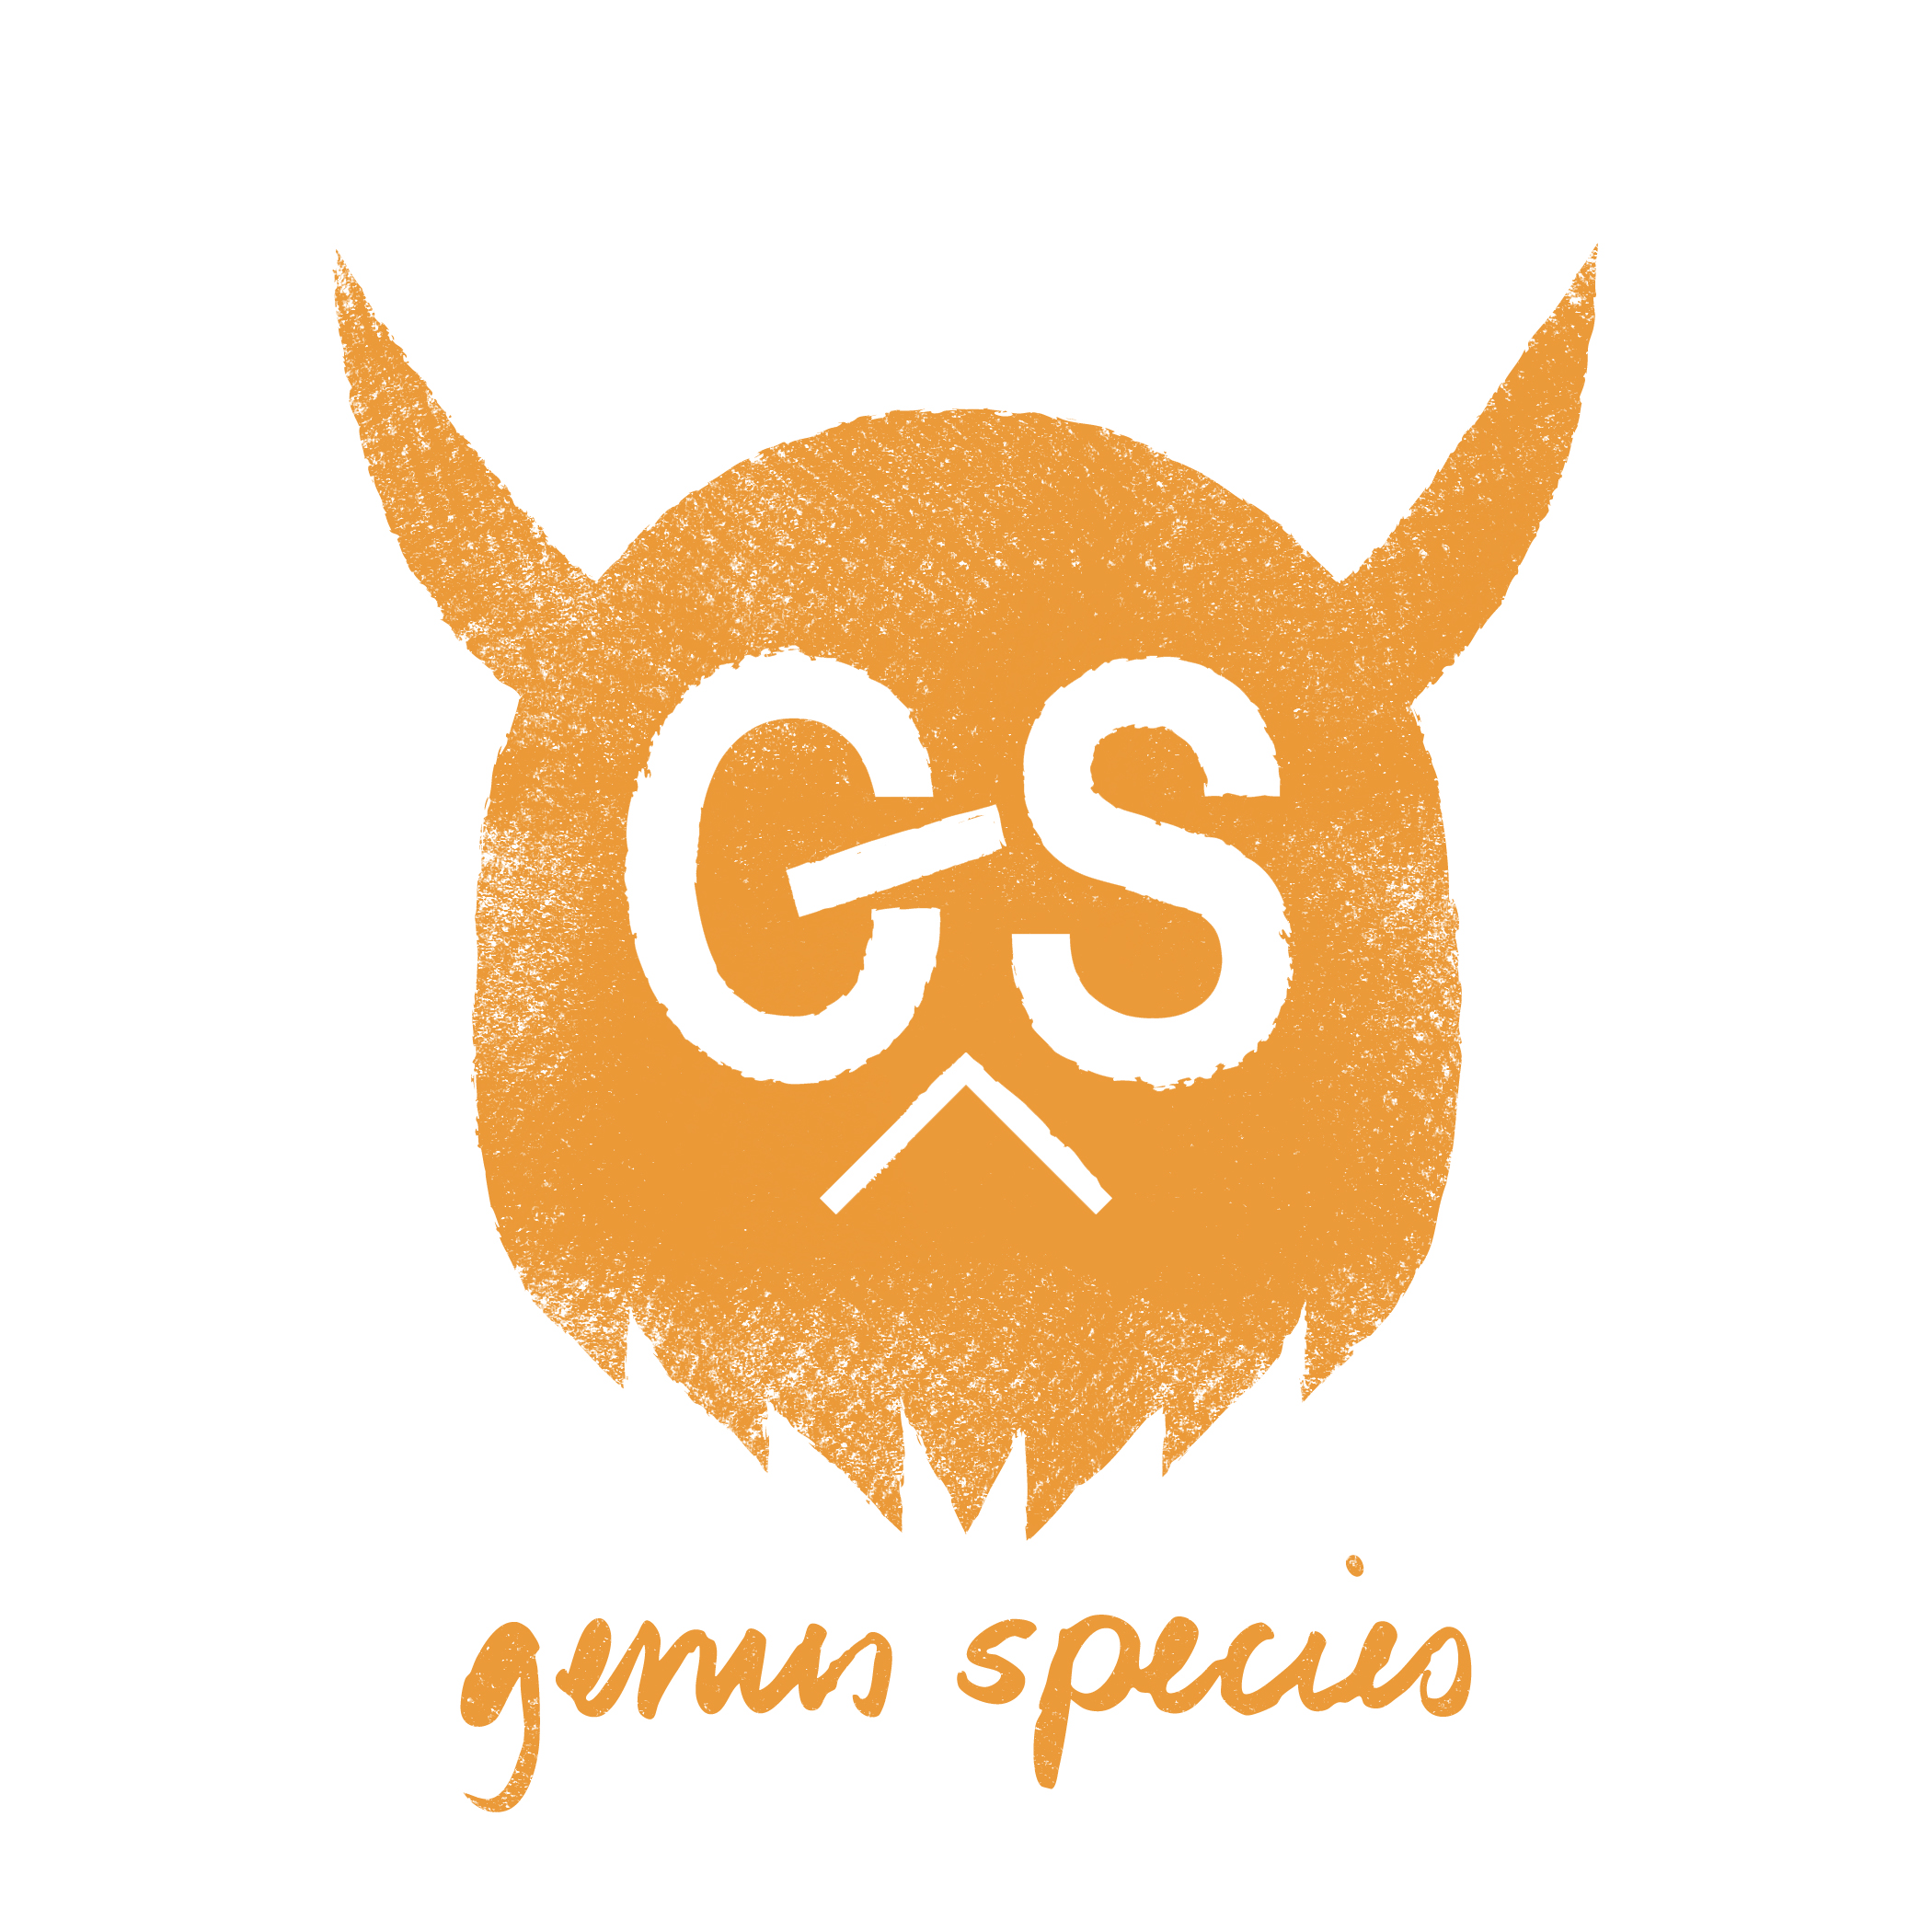 genusspecieslogo_Orange.jpg